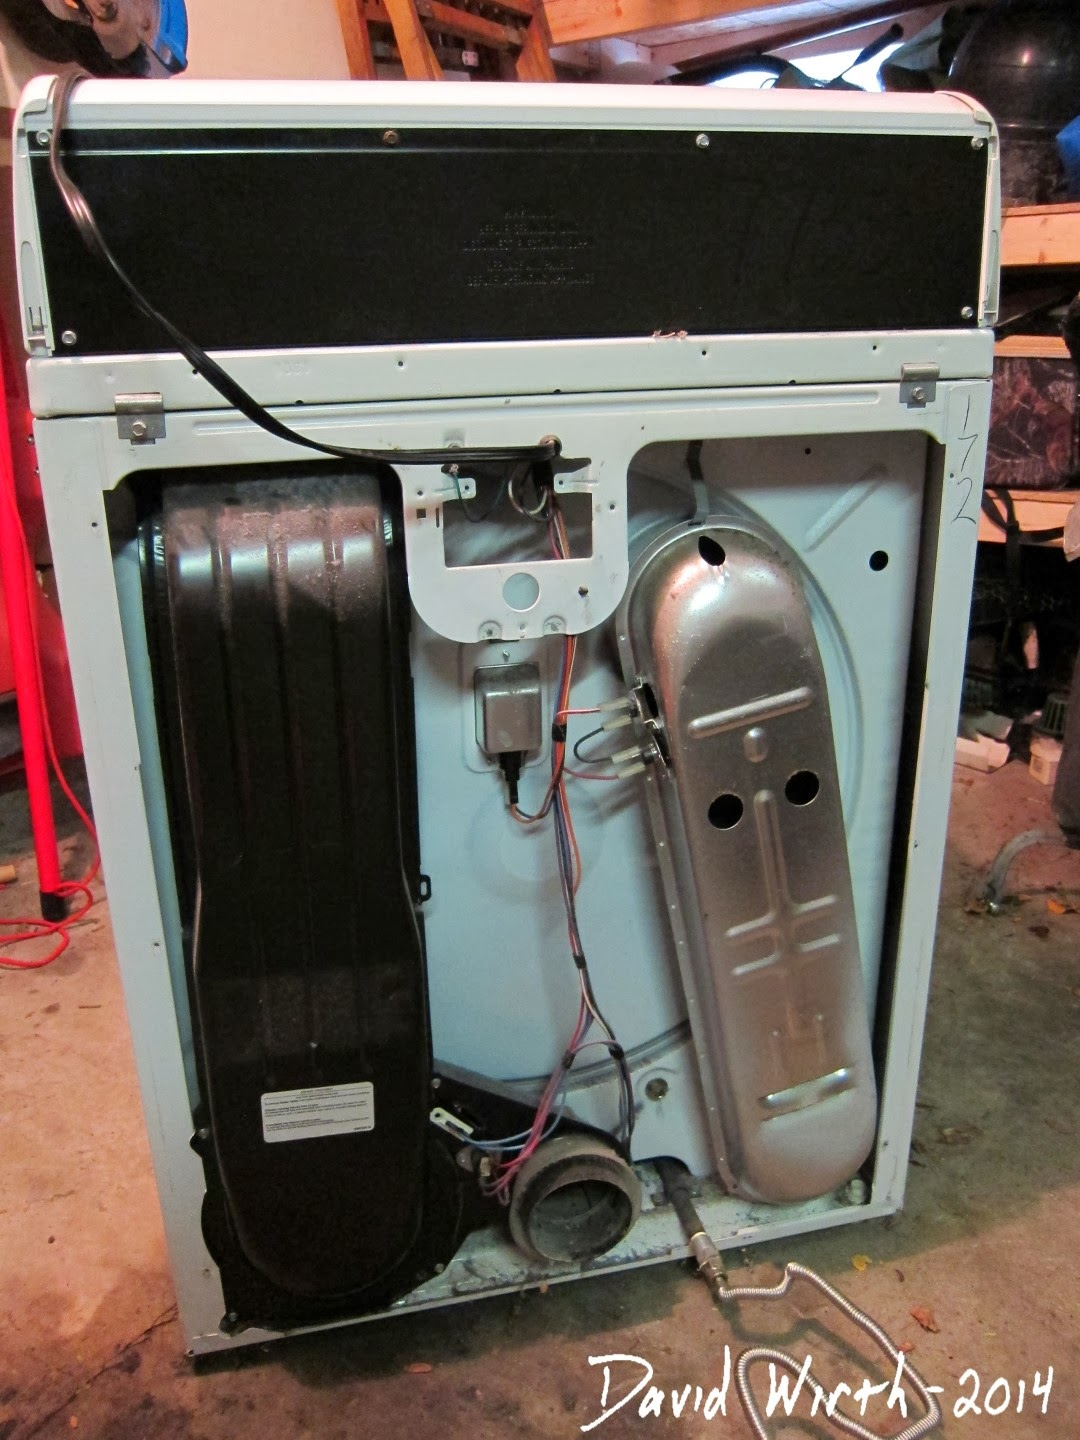 Gas Dryer new: Gas Dryer No Flame